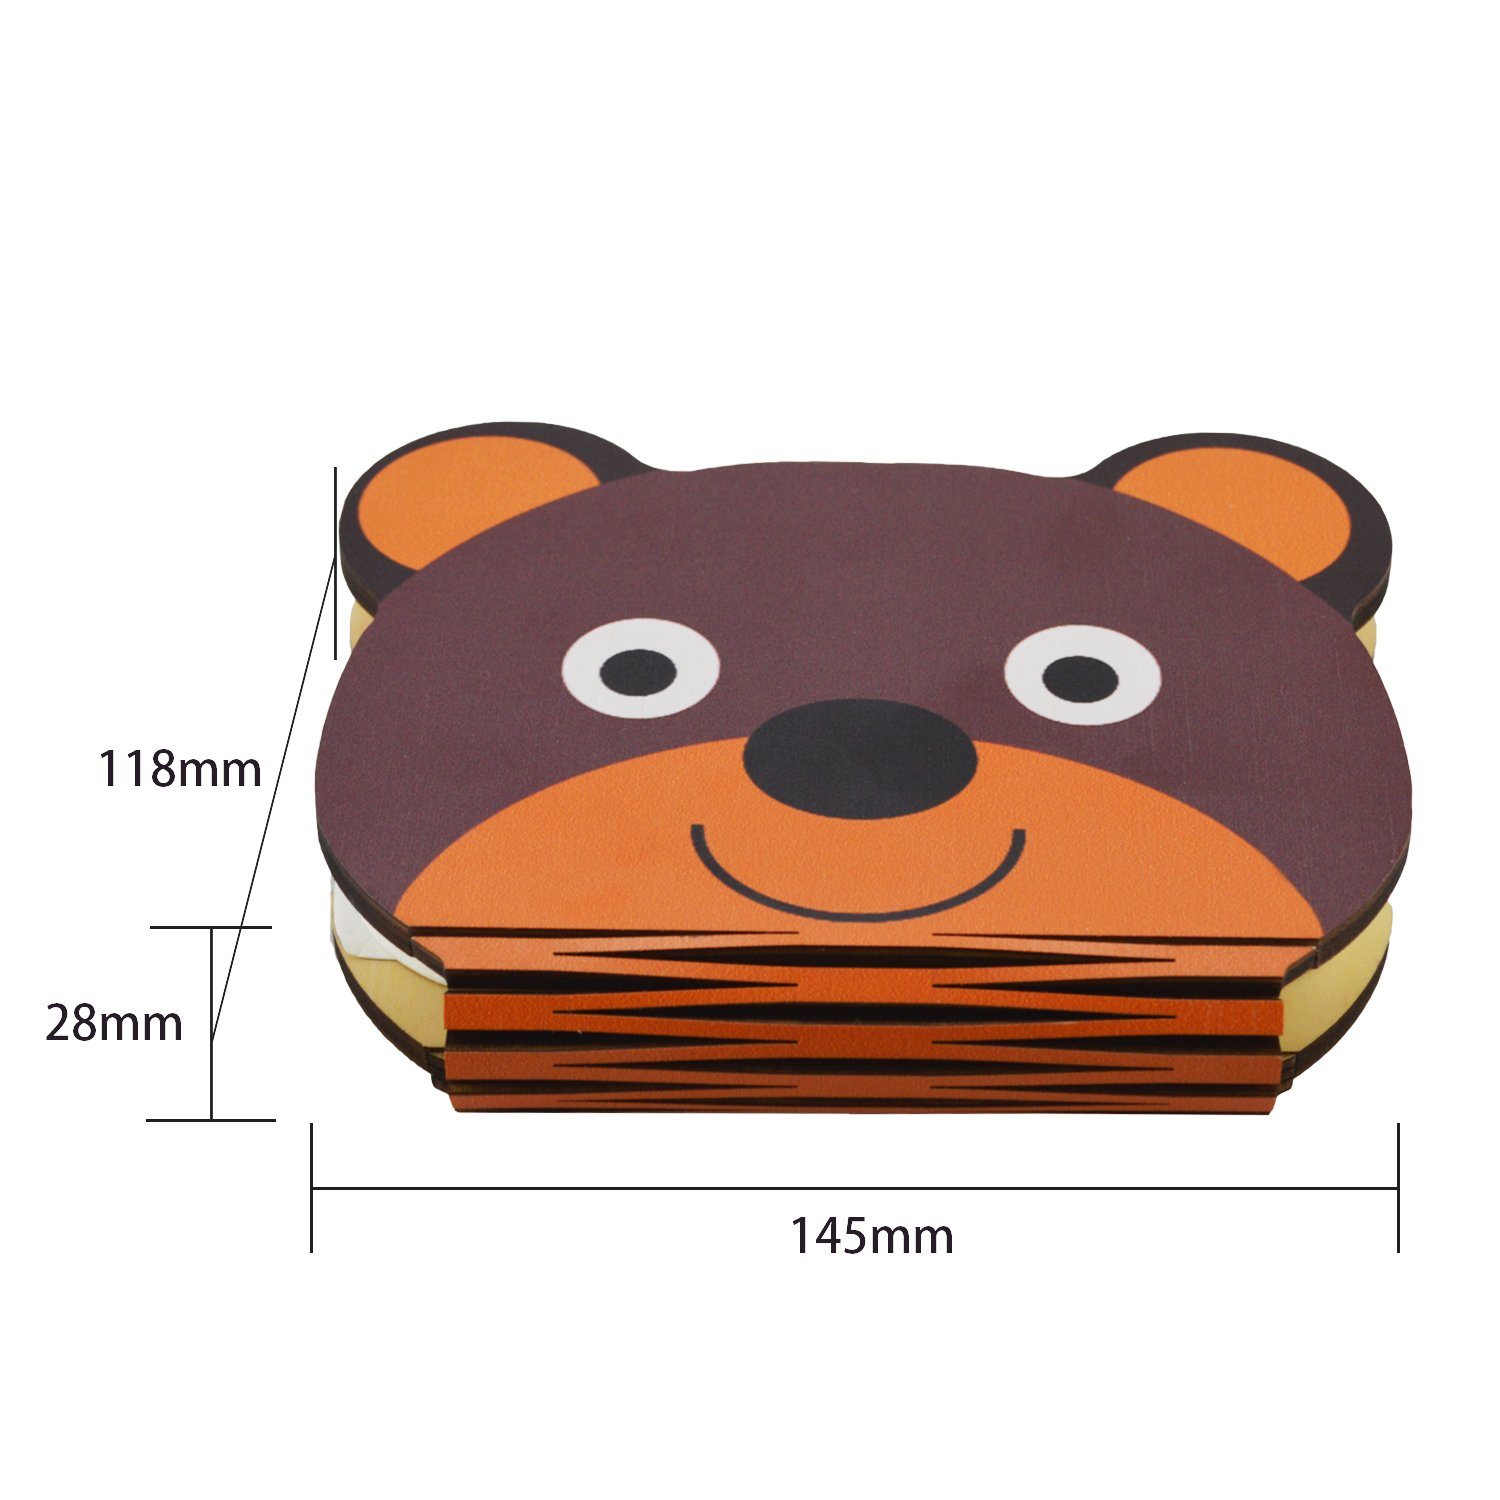 Folding LED Book Light, USB Rechargable Book Shaped, Desk Table Lamp for Decor, Creative Gift for Kids(Bear) by BMQ (Image #2)